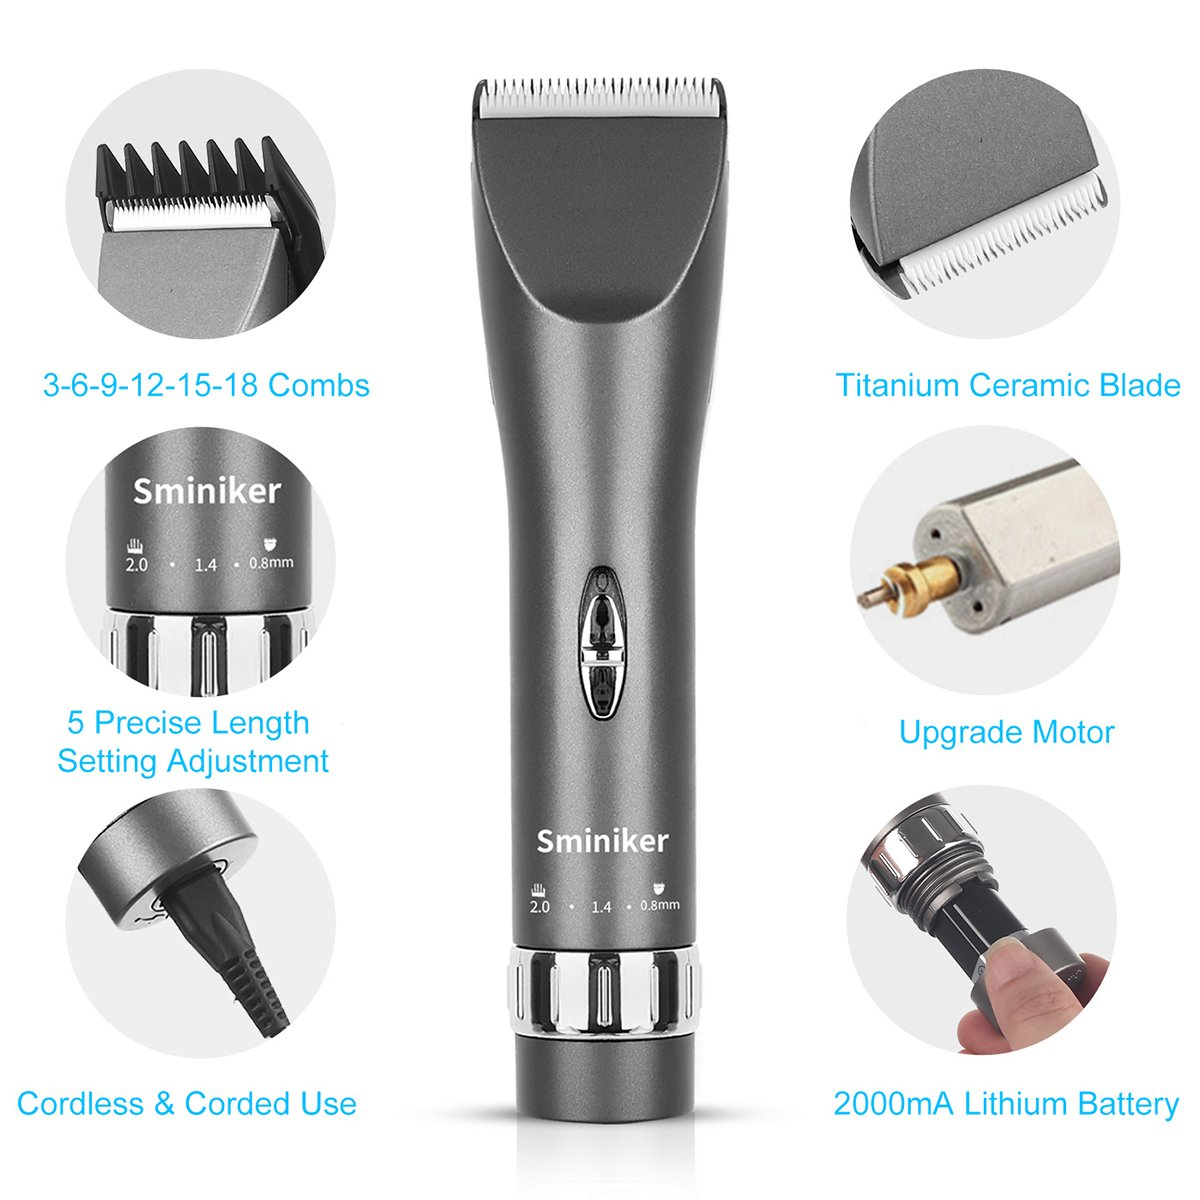 Sminiker Professional Cordless Haircut Kit Rechargeable Hair Clippers Set with 2 Batteries, 6 Comb, Guides and Scissors - Grey by Sminiker Professional (Image #8)